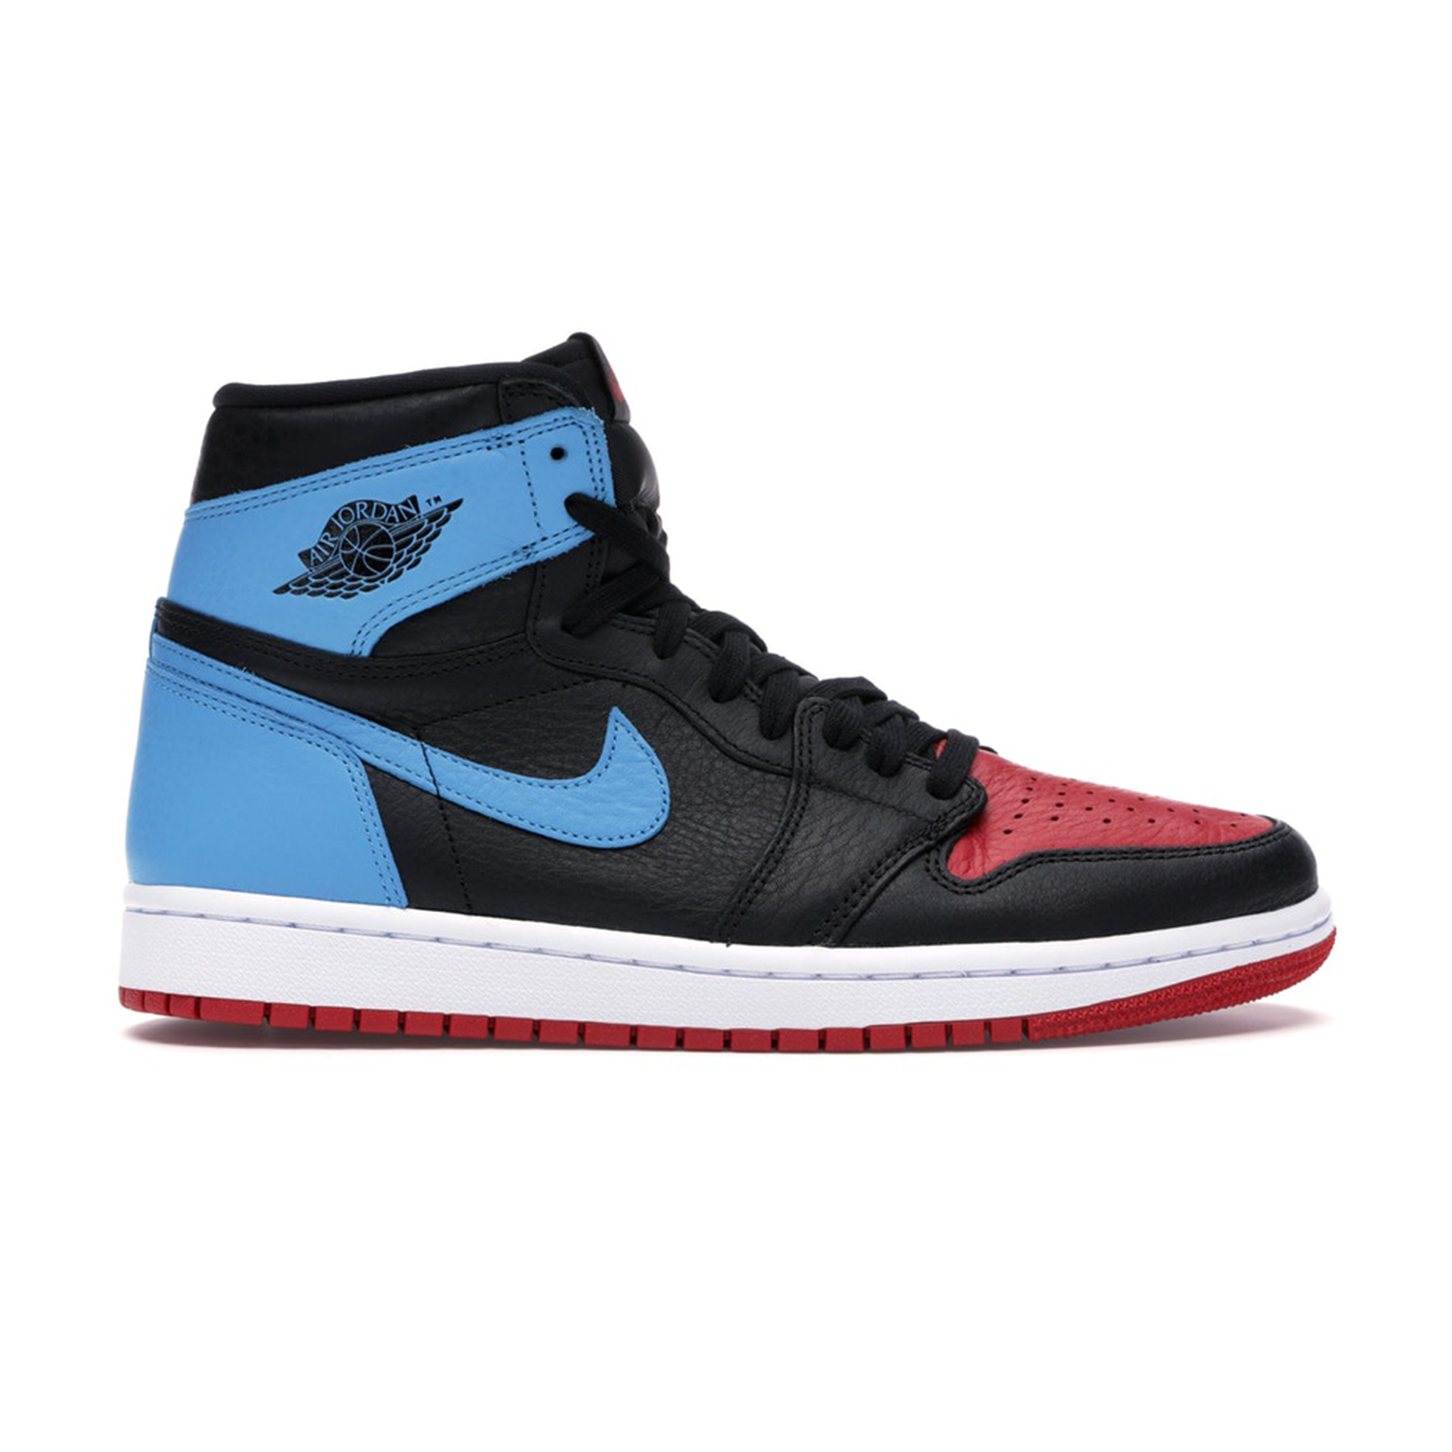 Jordan-1-High-UNC-To-Chicago-W-2